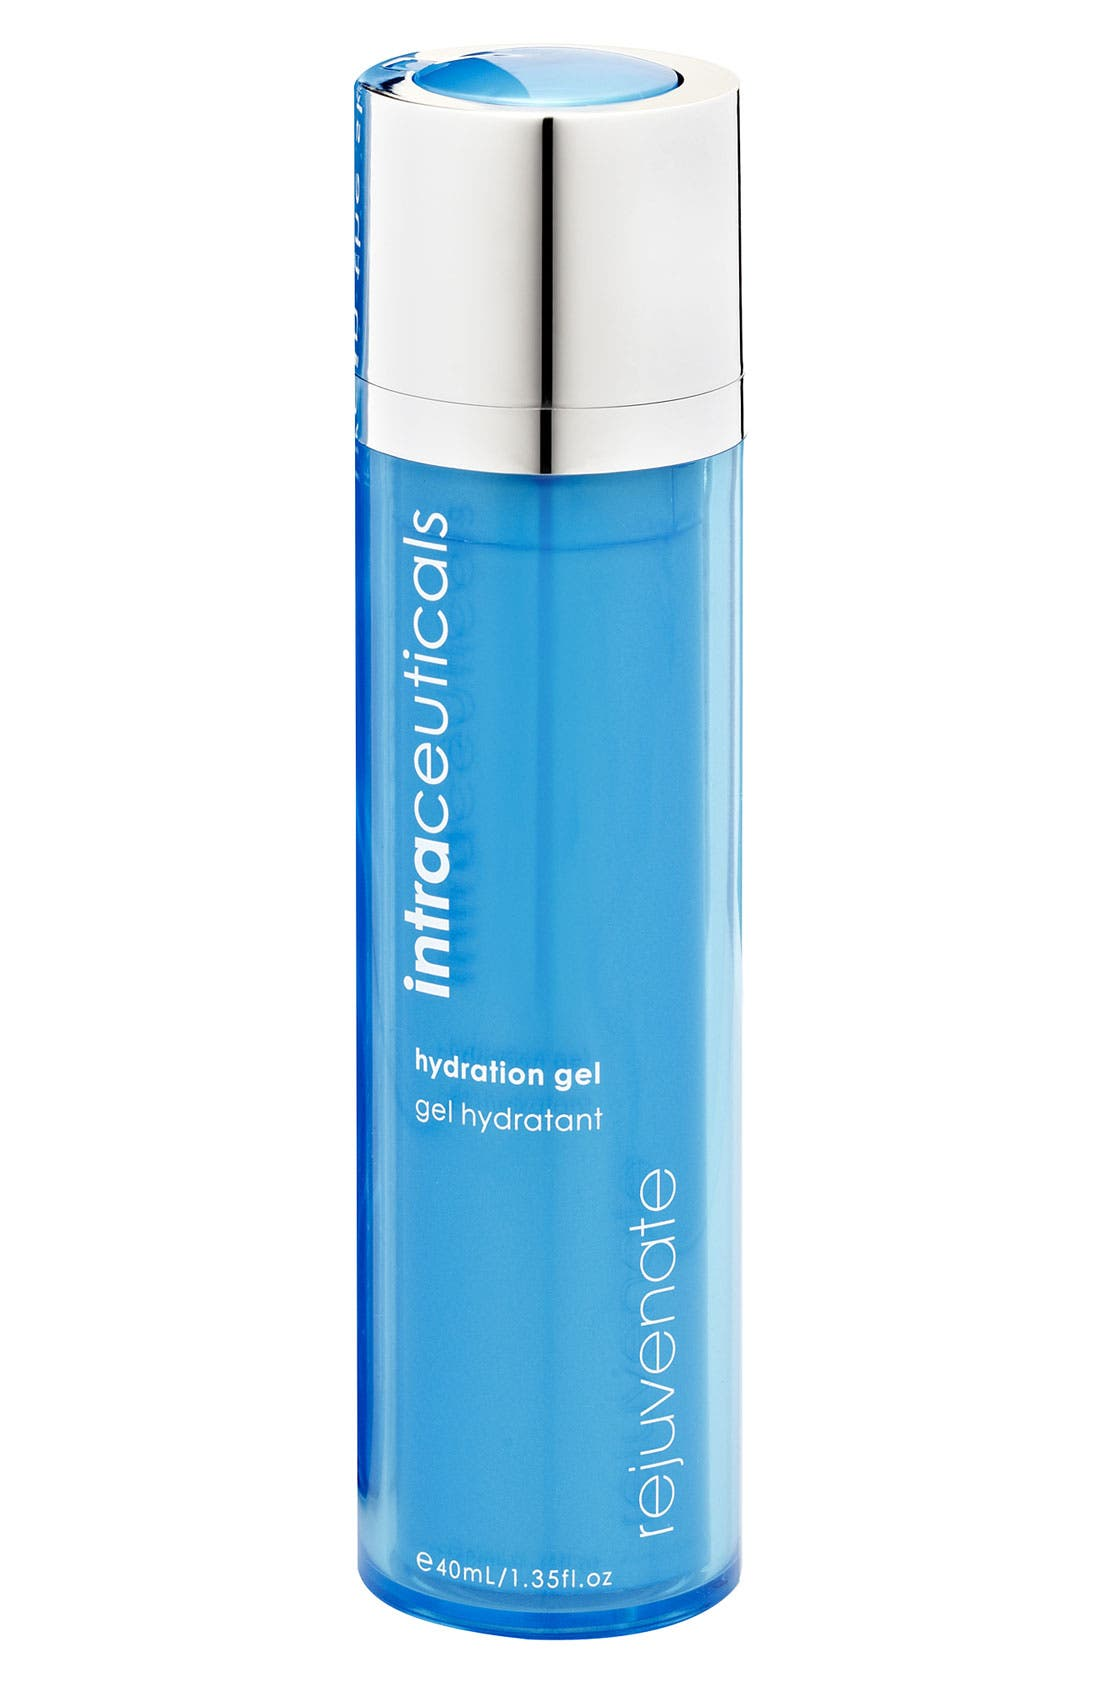 intraceuticals® 'Rejuvenate' Hydration Gel